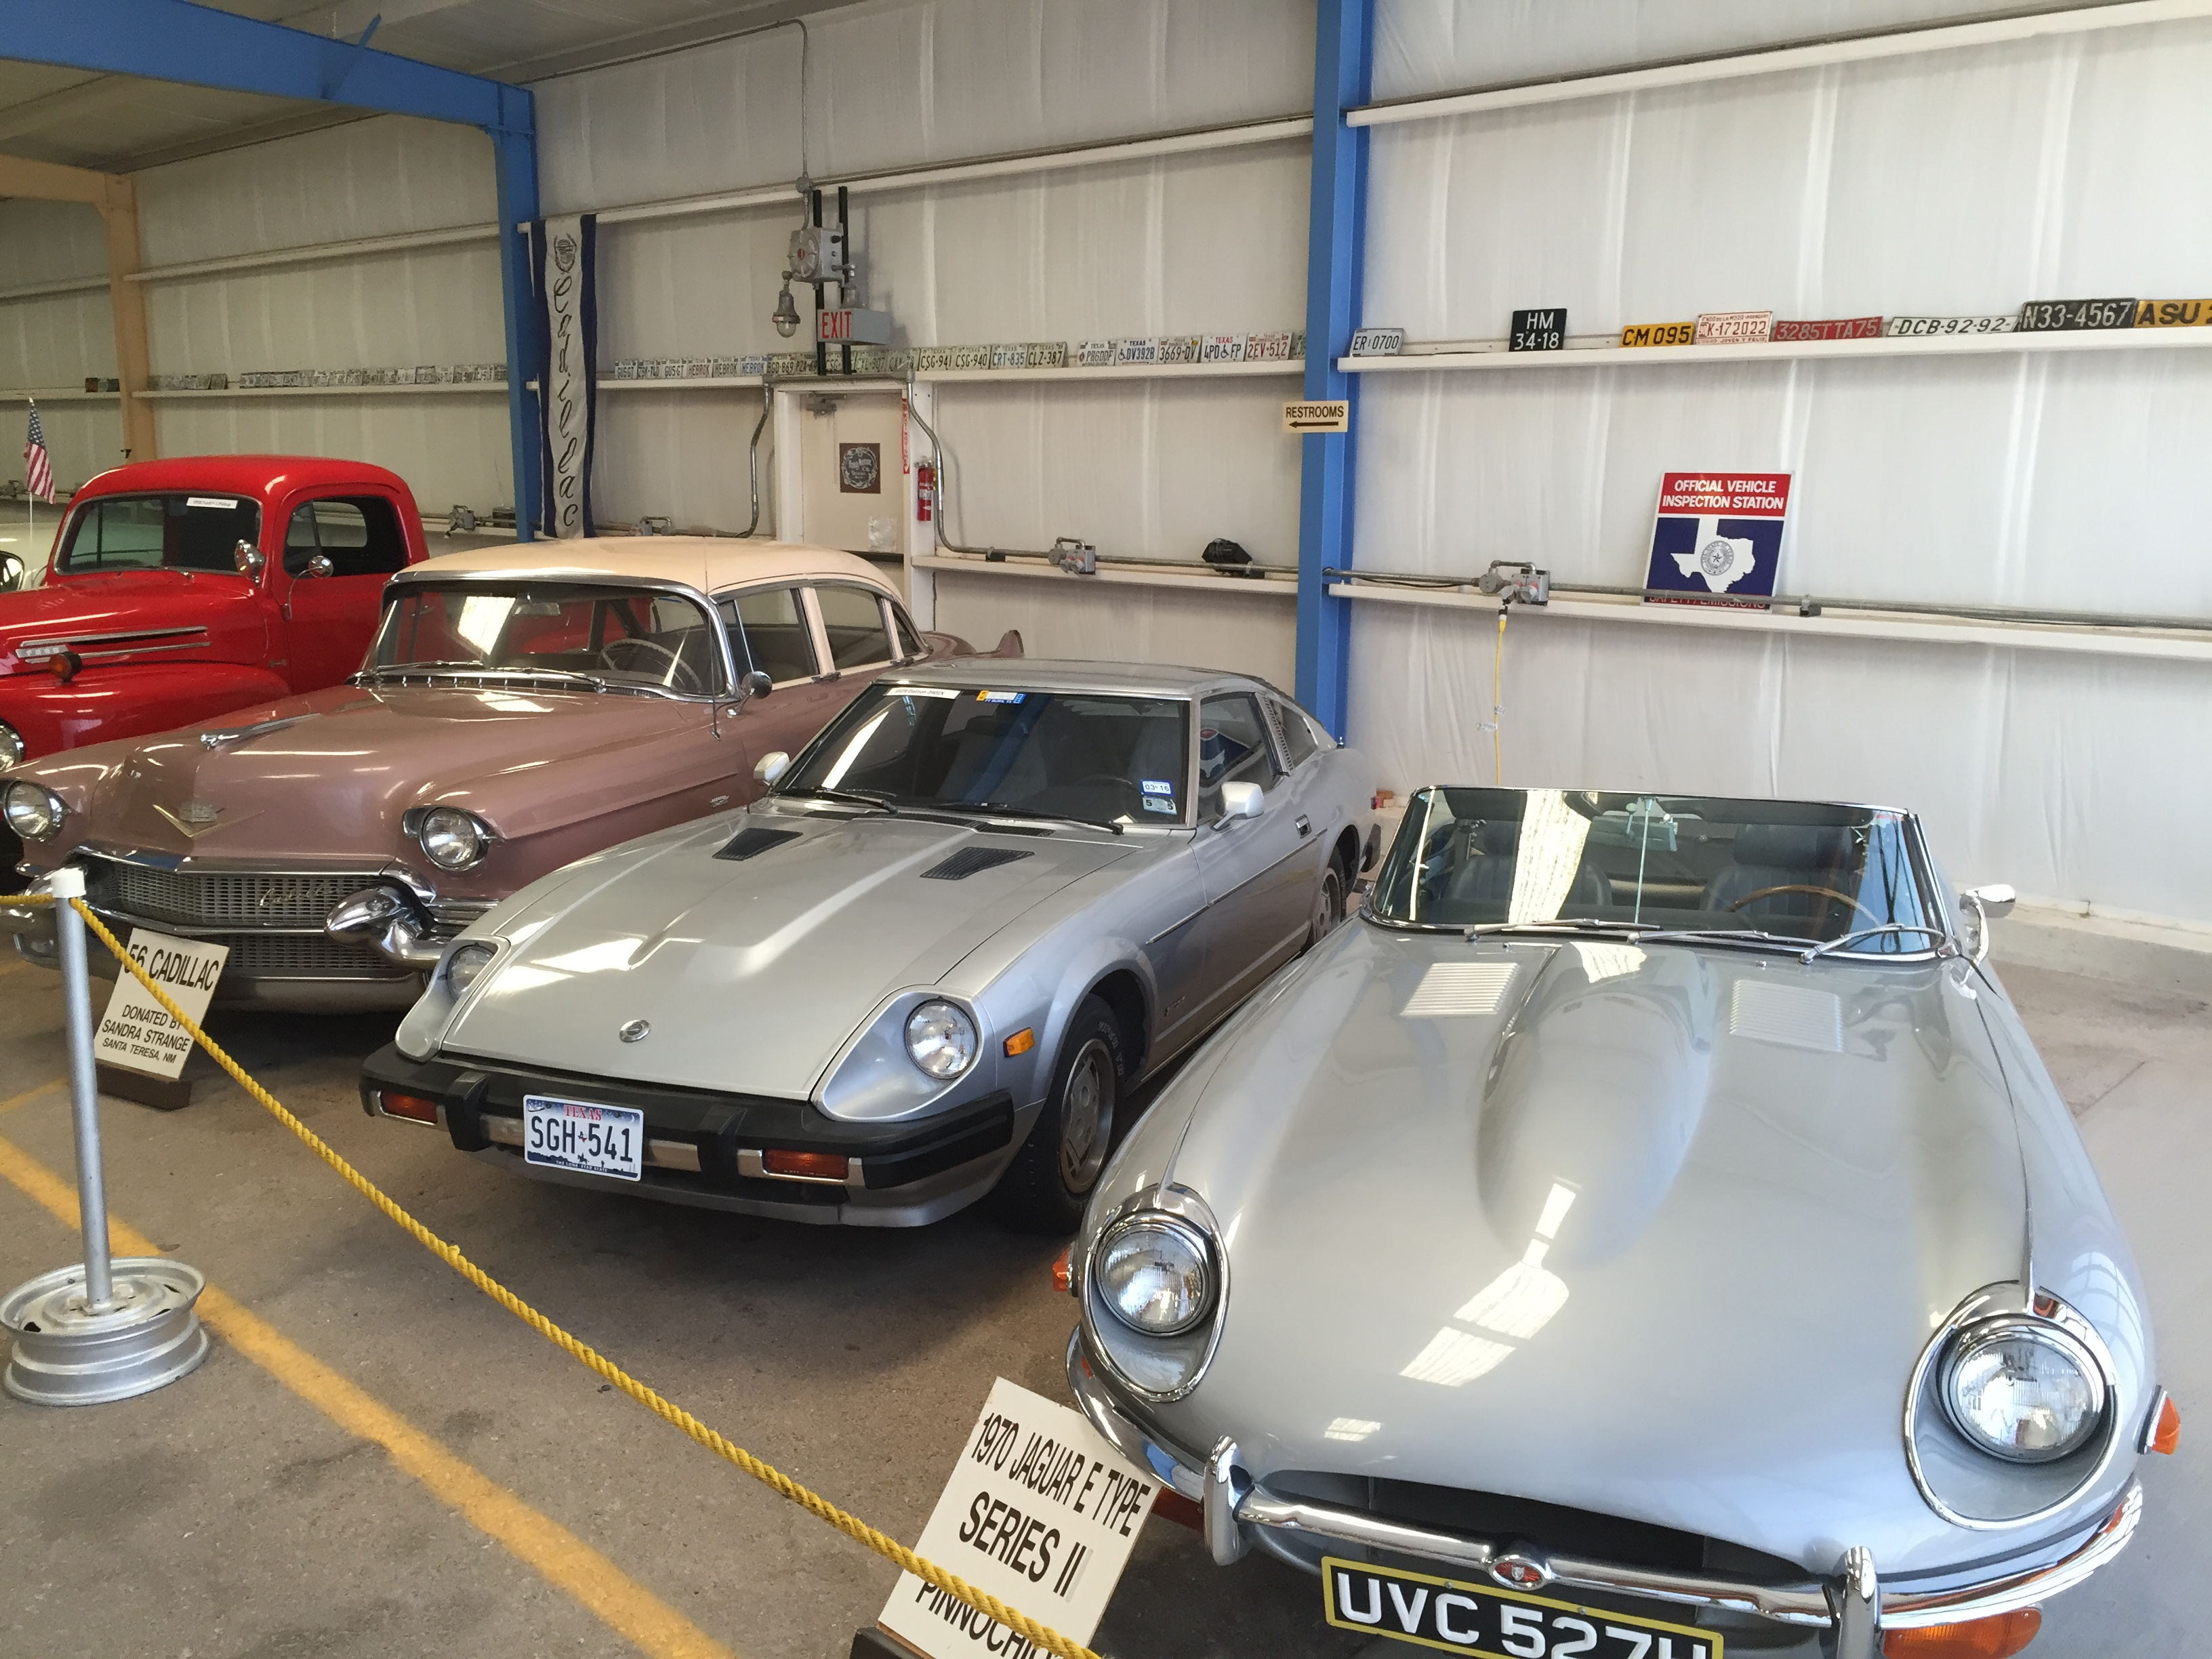 A few of the vintage cars including a 1956 Cadillac and a 1970 Jaguar E Type Series II.